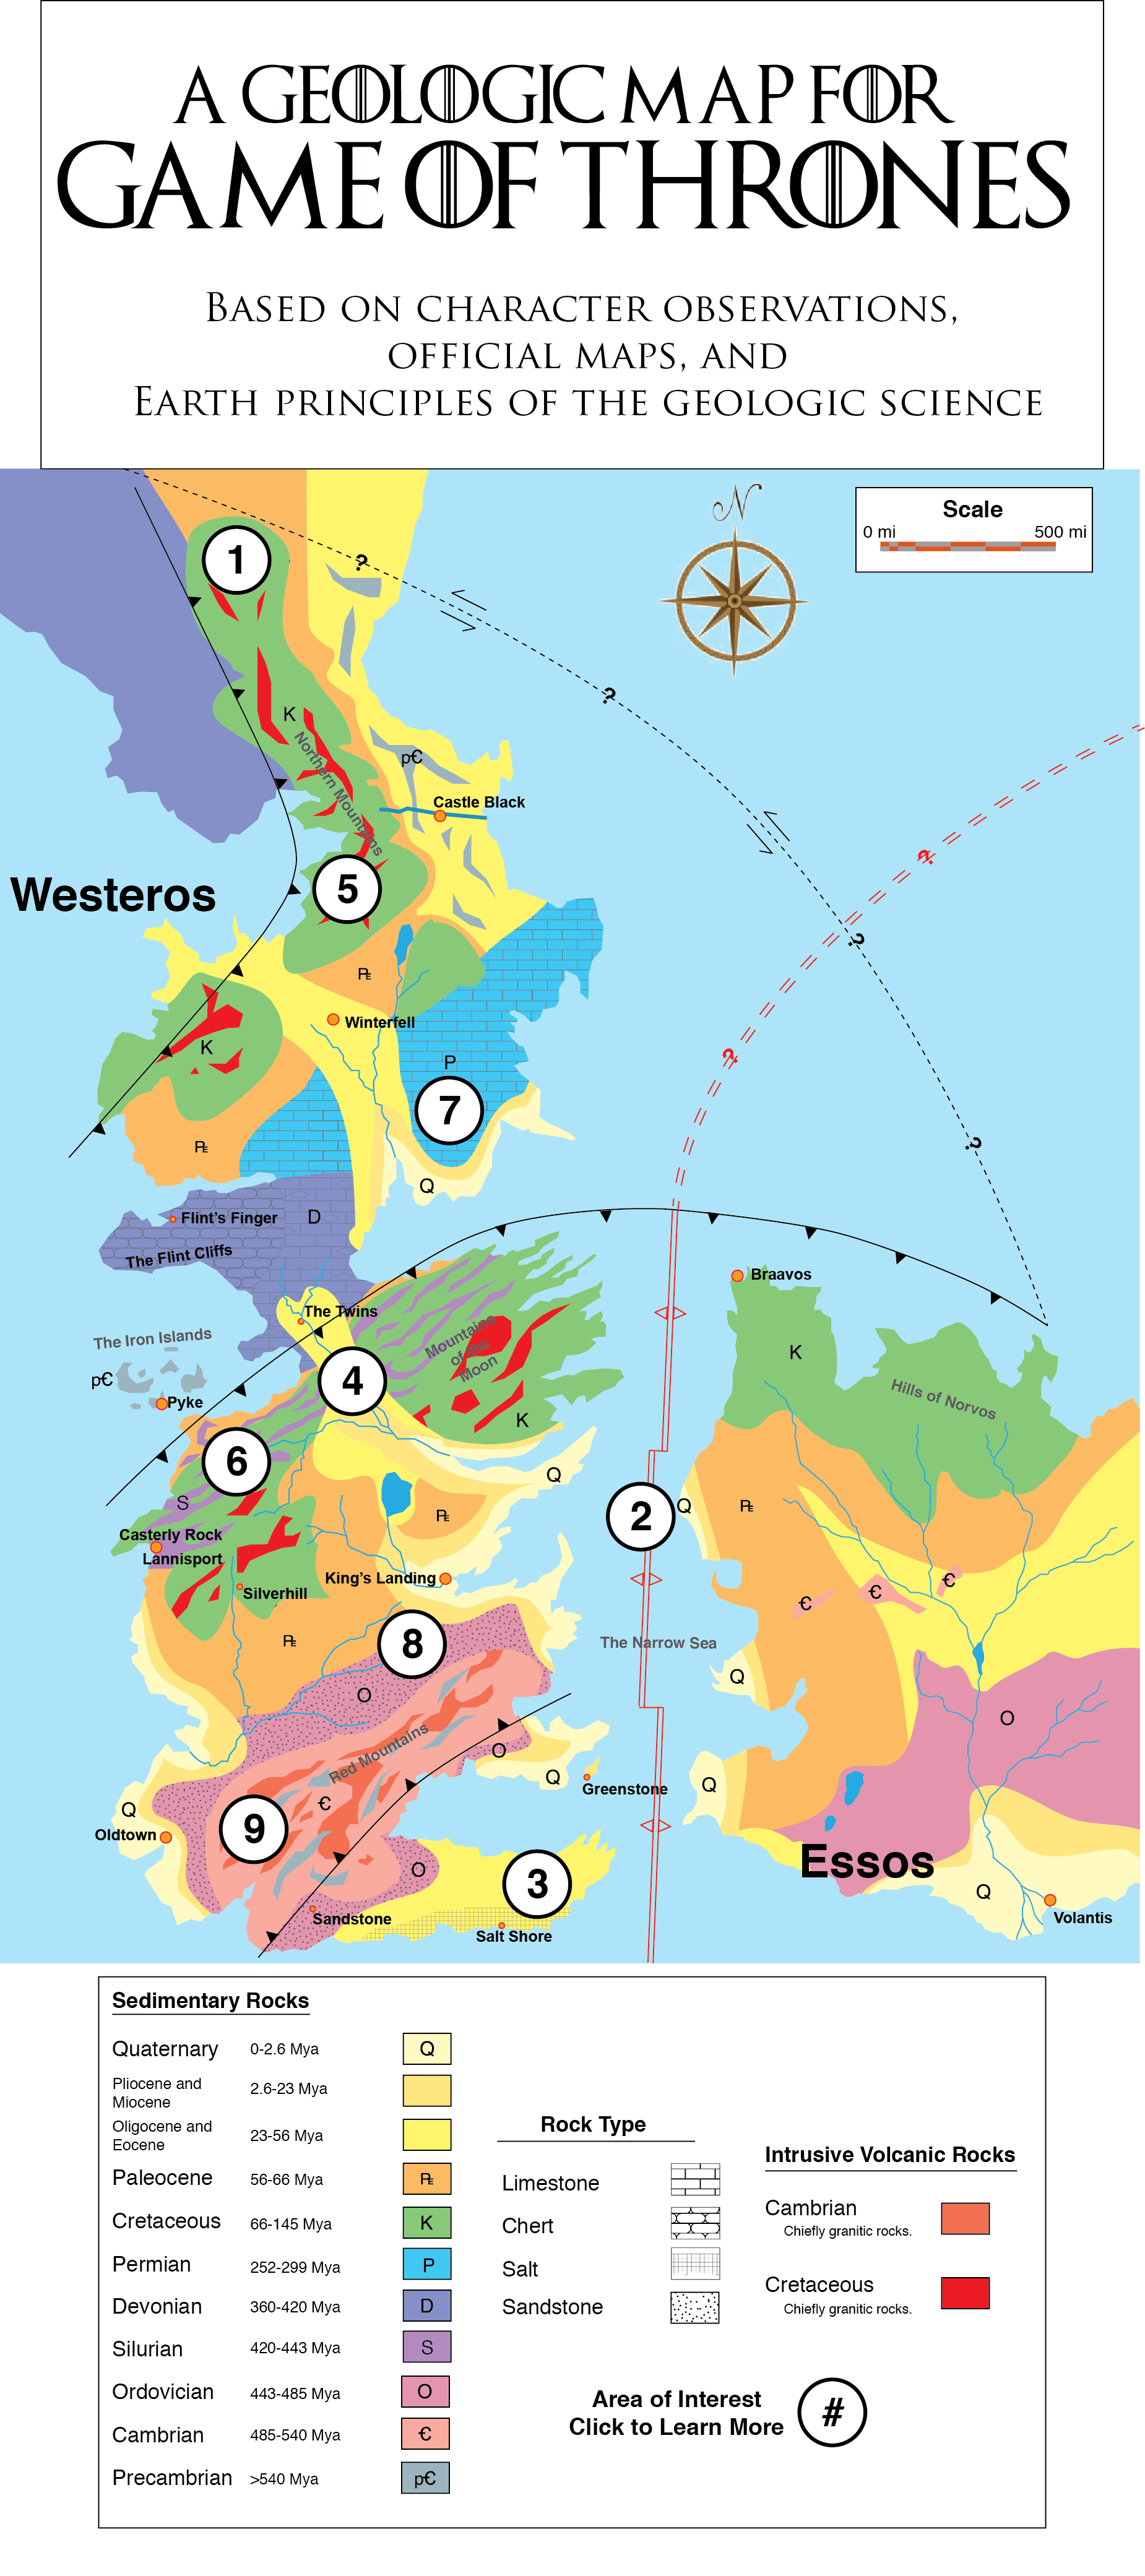 The Geology of Game of Thrones | Miles Traer on sons of anarchy, fire and blood, gendry map, the kingsroad, themes in a song of ice and fire, a game of thrones collectible card game, clash of kings map, justified map, dallas map, a storm of swords map, valyria map, the prince of winterfell, world map, downton abbey map, star trek map, jericho map, a storm of swords, lord snow, camelot map, guild wars 2 map, spooksville map, winter is coming, walking dead map, a clash of kings, narnia map, a game of thrones, jersey shore map, winterfell map, bloodline map, a game of thrones: genesis, works based on a song of ice and fire, game of thrones - season 1, the pointy end, a golden crown, got map, game of thrones - season 2, tales of dunk and egg, qarth map,